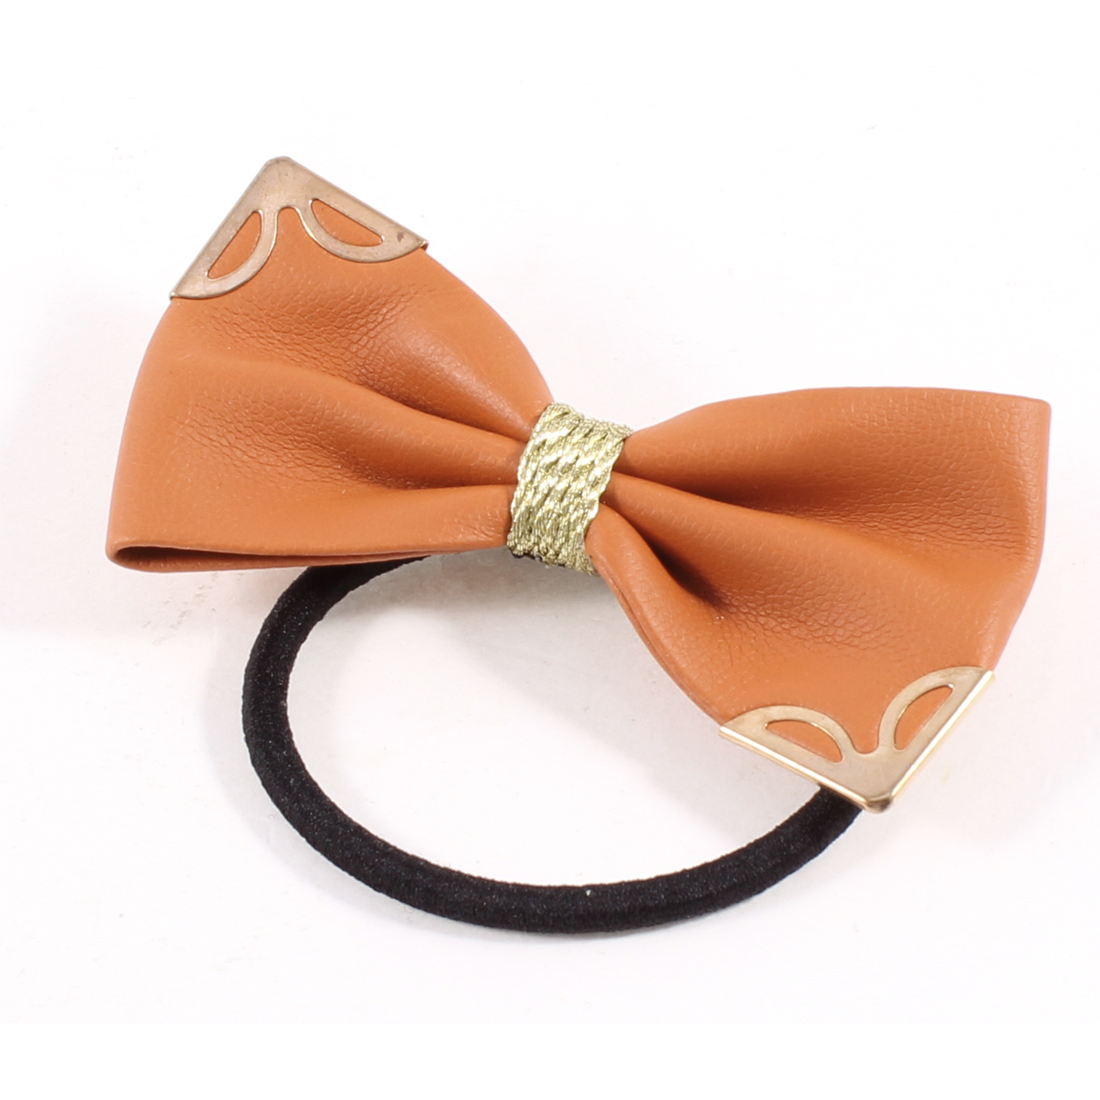 Unique Bargains Dark Orange Faux Leather Lovely Butterfly Knot Hair Tie Band Ponytail Holder